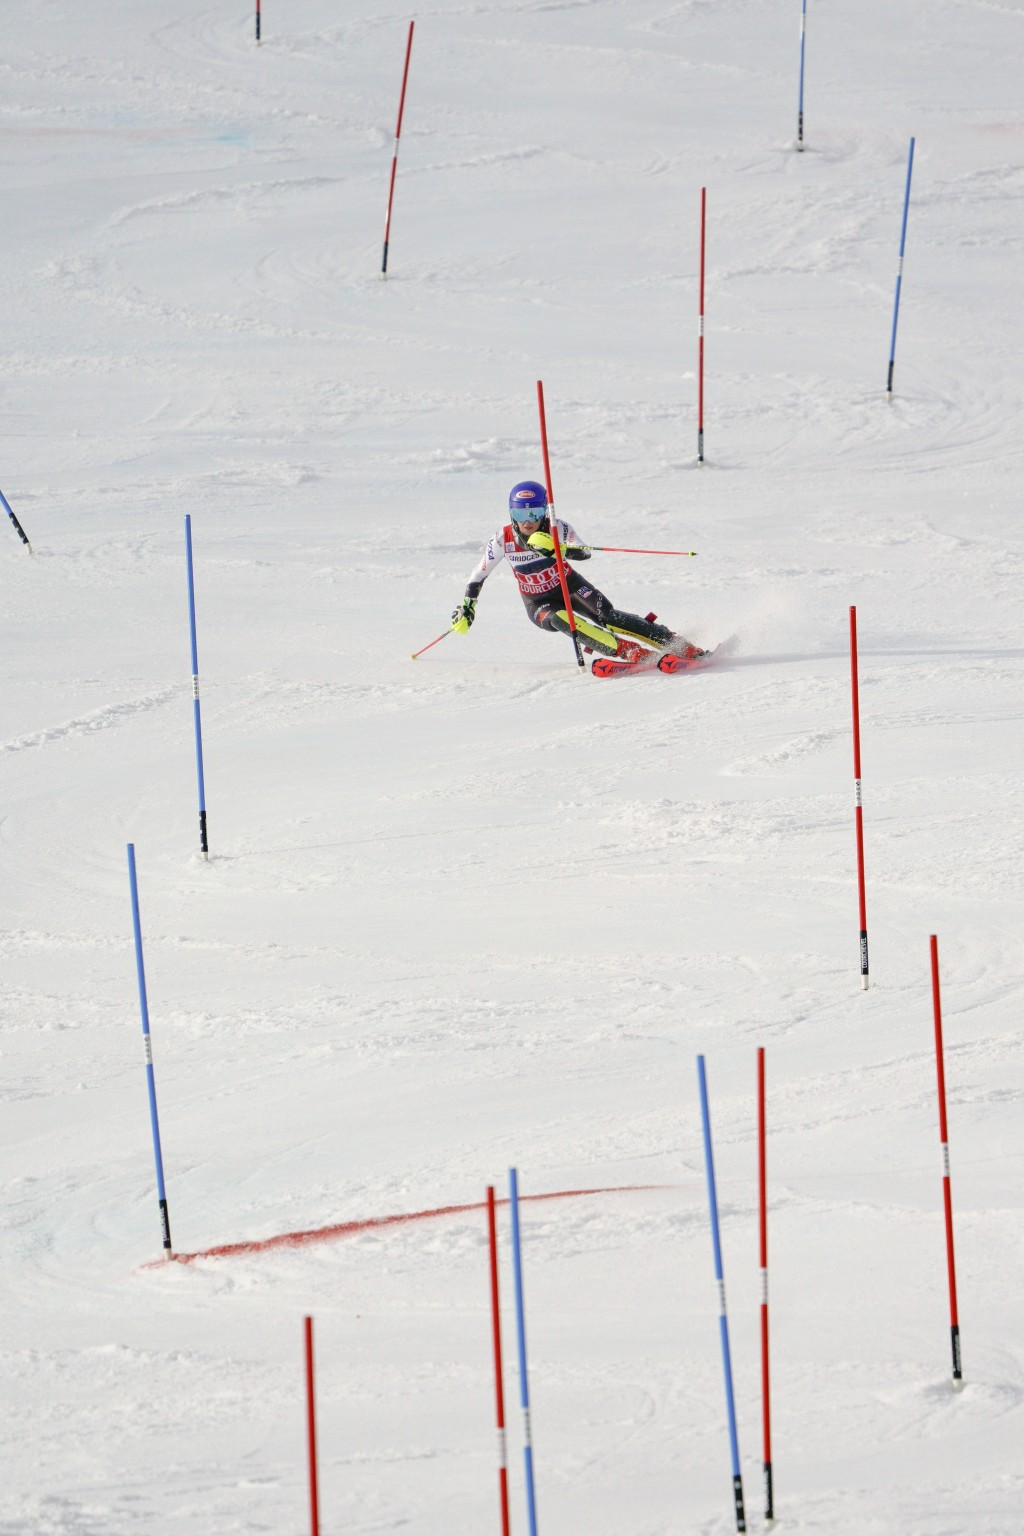 United States' Mikaela Shiffrin speeds down the course during a ski World Cup women's Slalom race, in Courchevel, France, Saturday, Dec. 22, 2018. (AP...